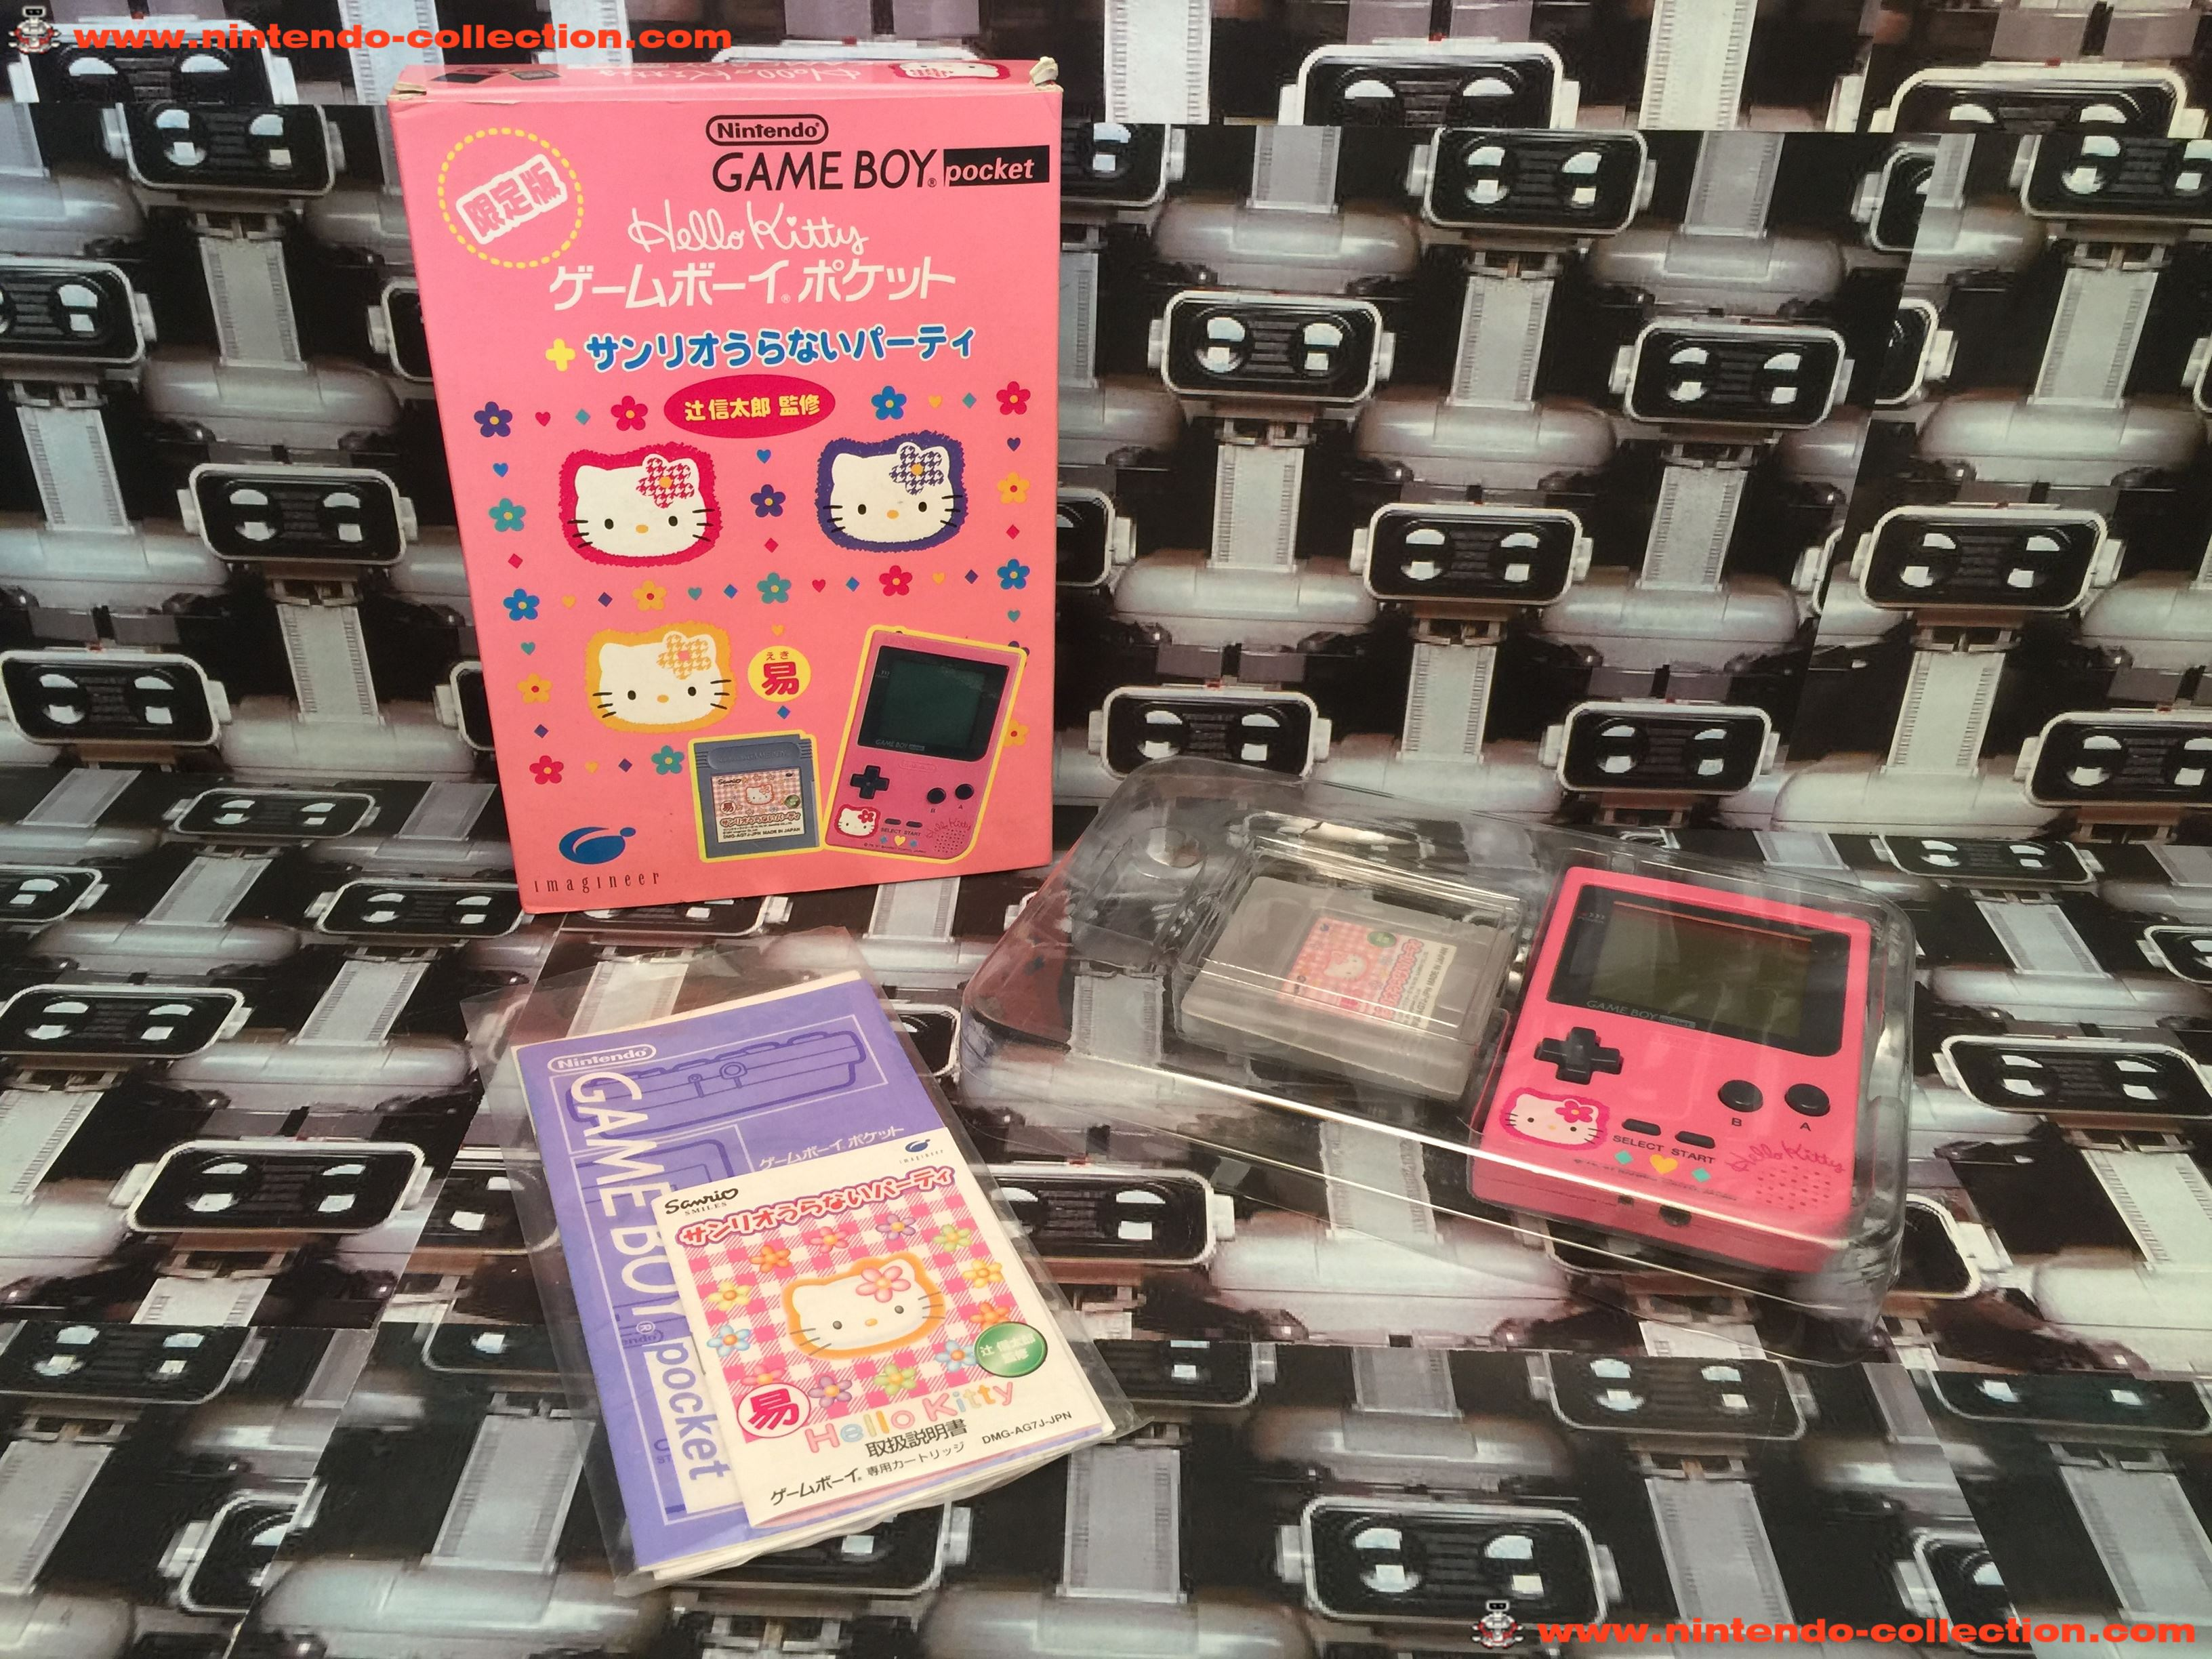 www.nintendo-collection.com - Gameboy GB Hello Kitty Limited Edition Japan - 01